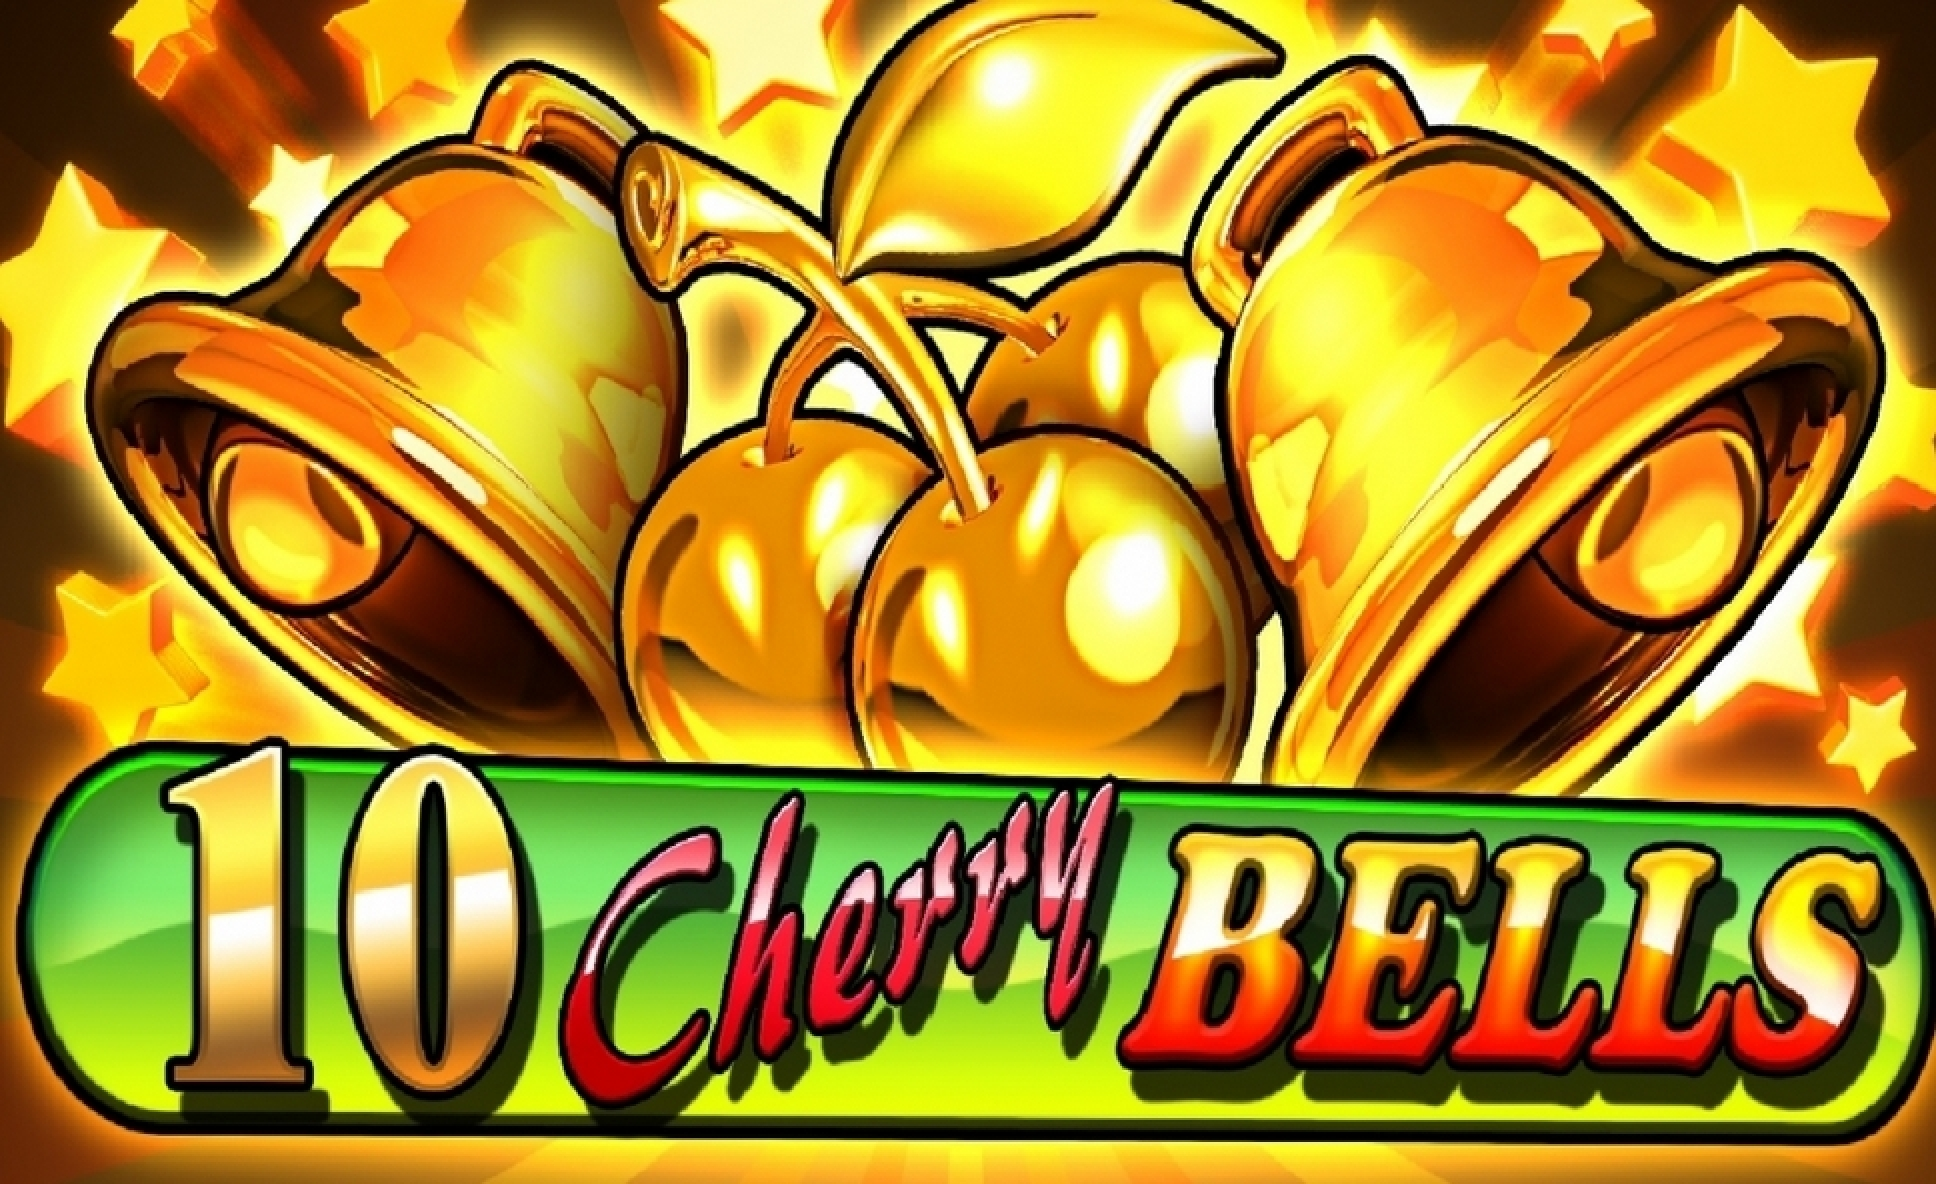 The 10 Cherry Bells Online Slot Demo Game by FUGA Gaming